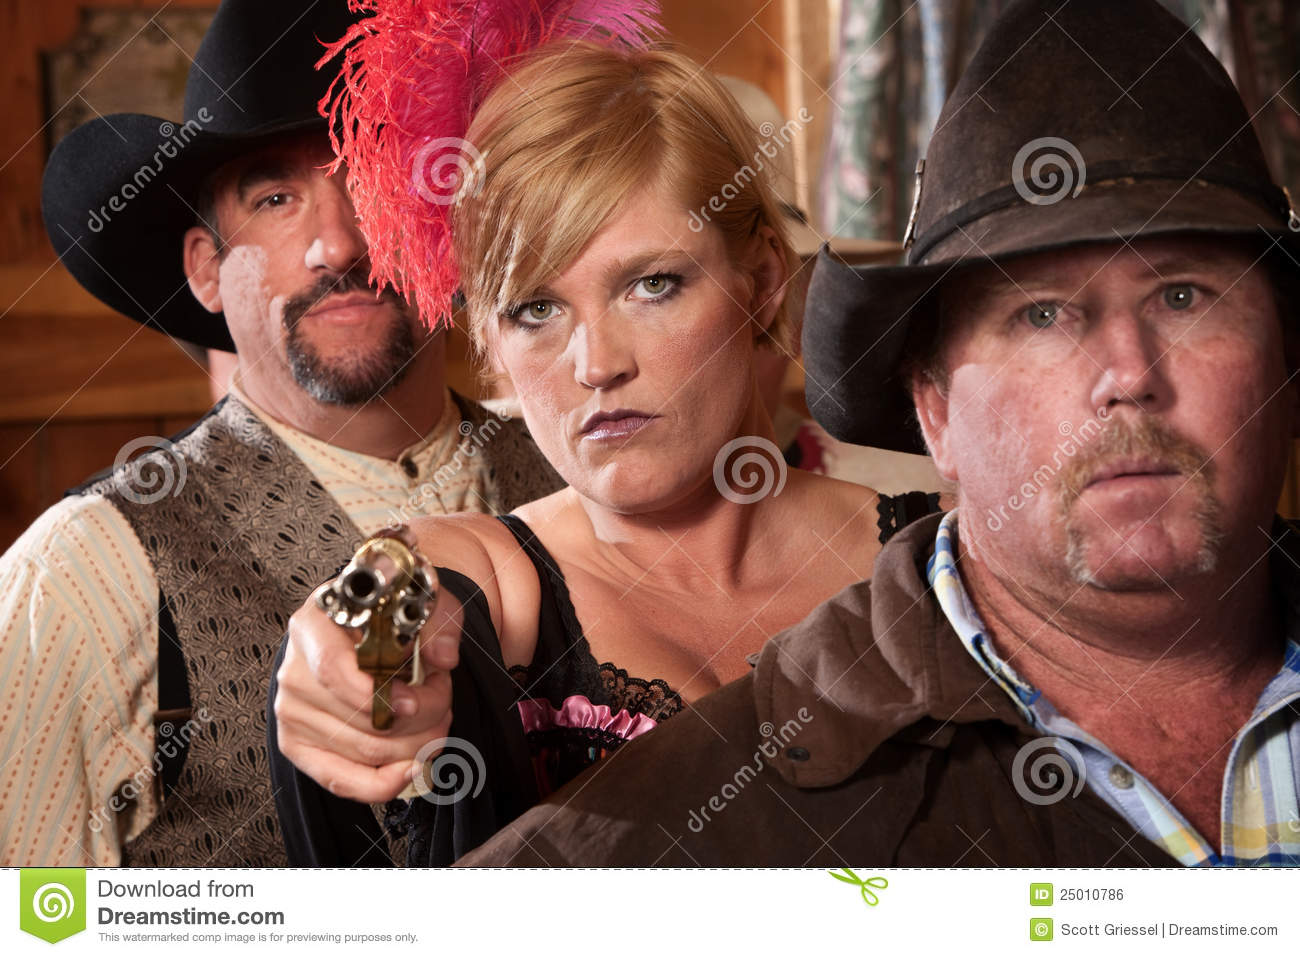 8fc582aaf1b84 Show girl between two men pulls out a revolver in old west saloon